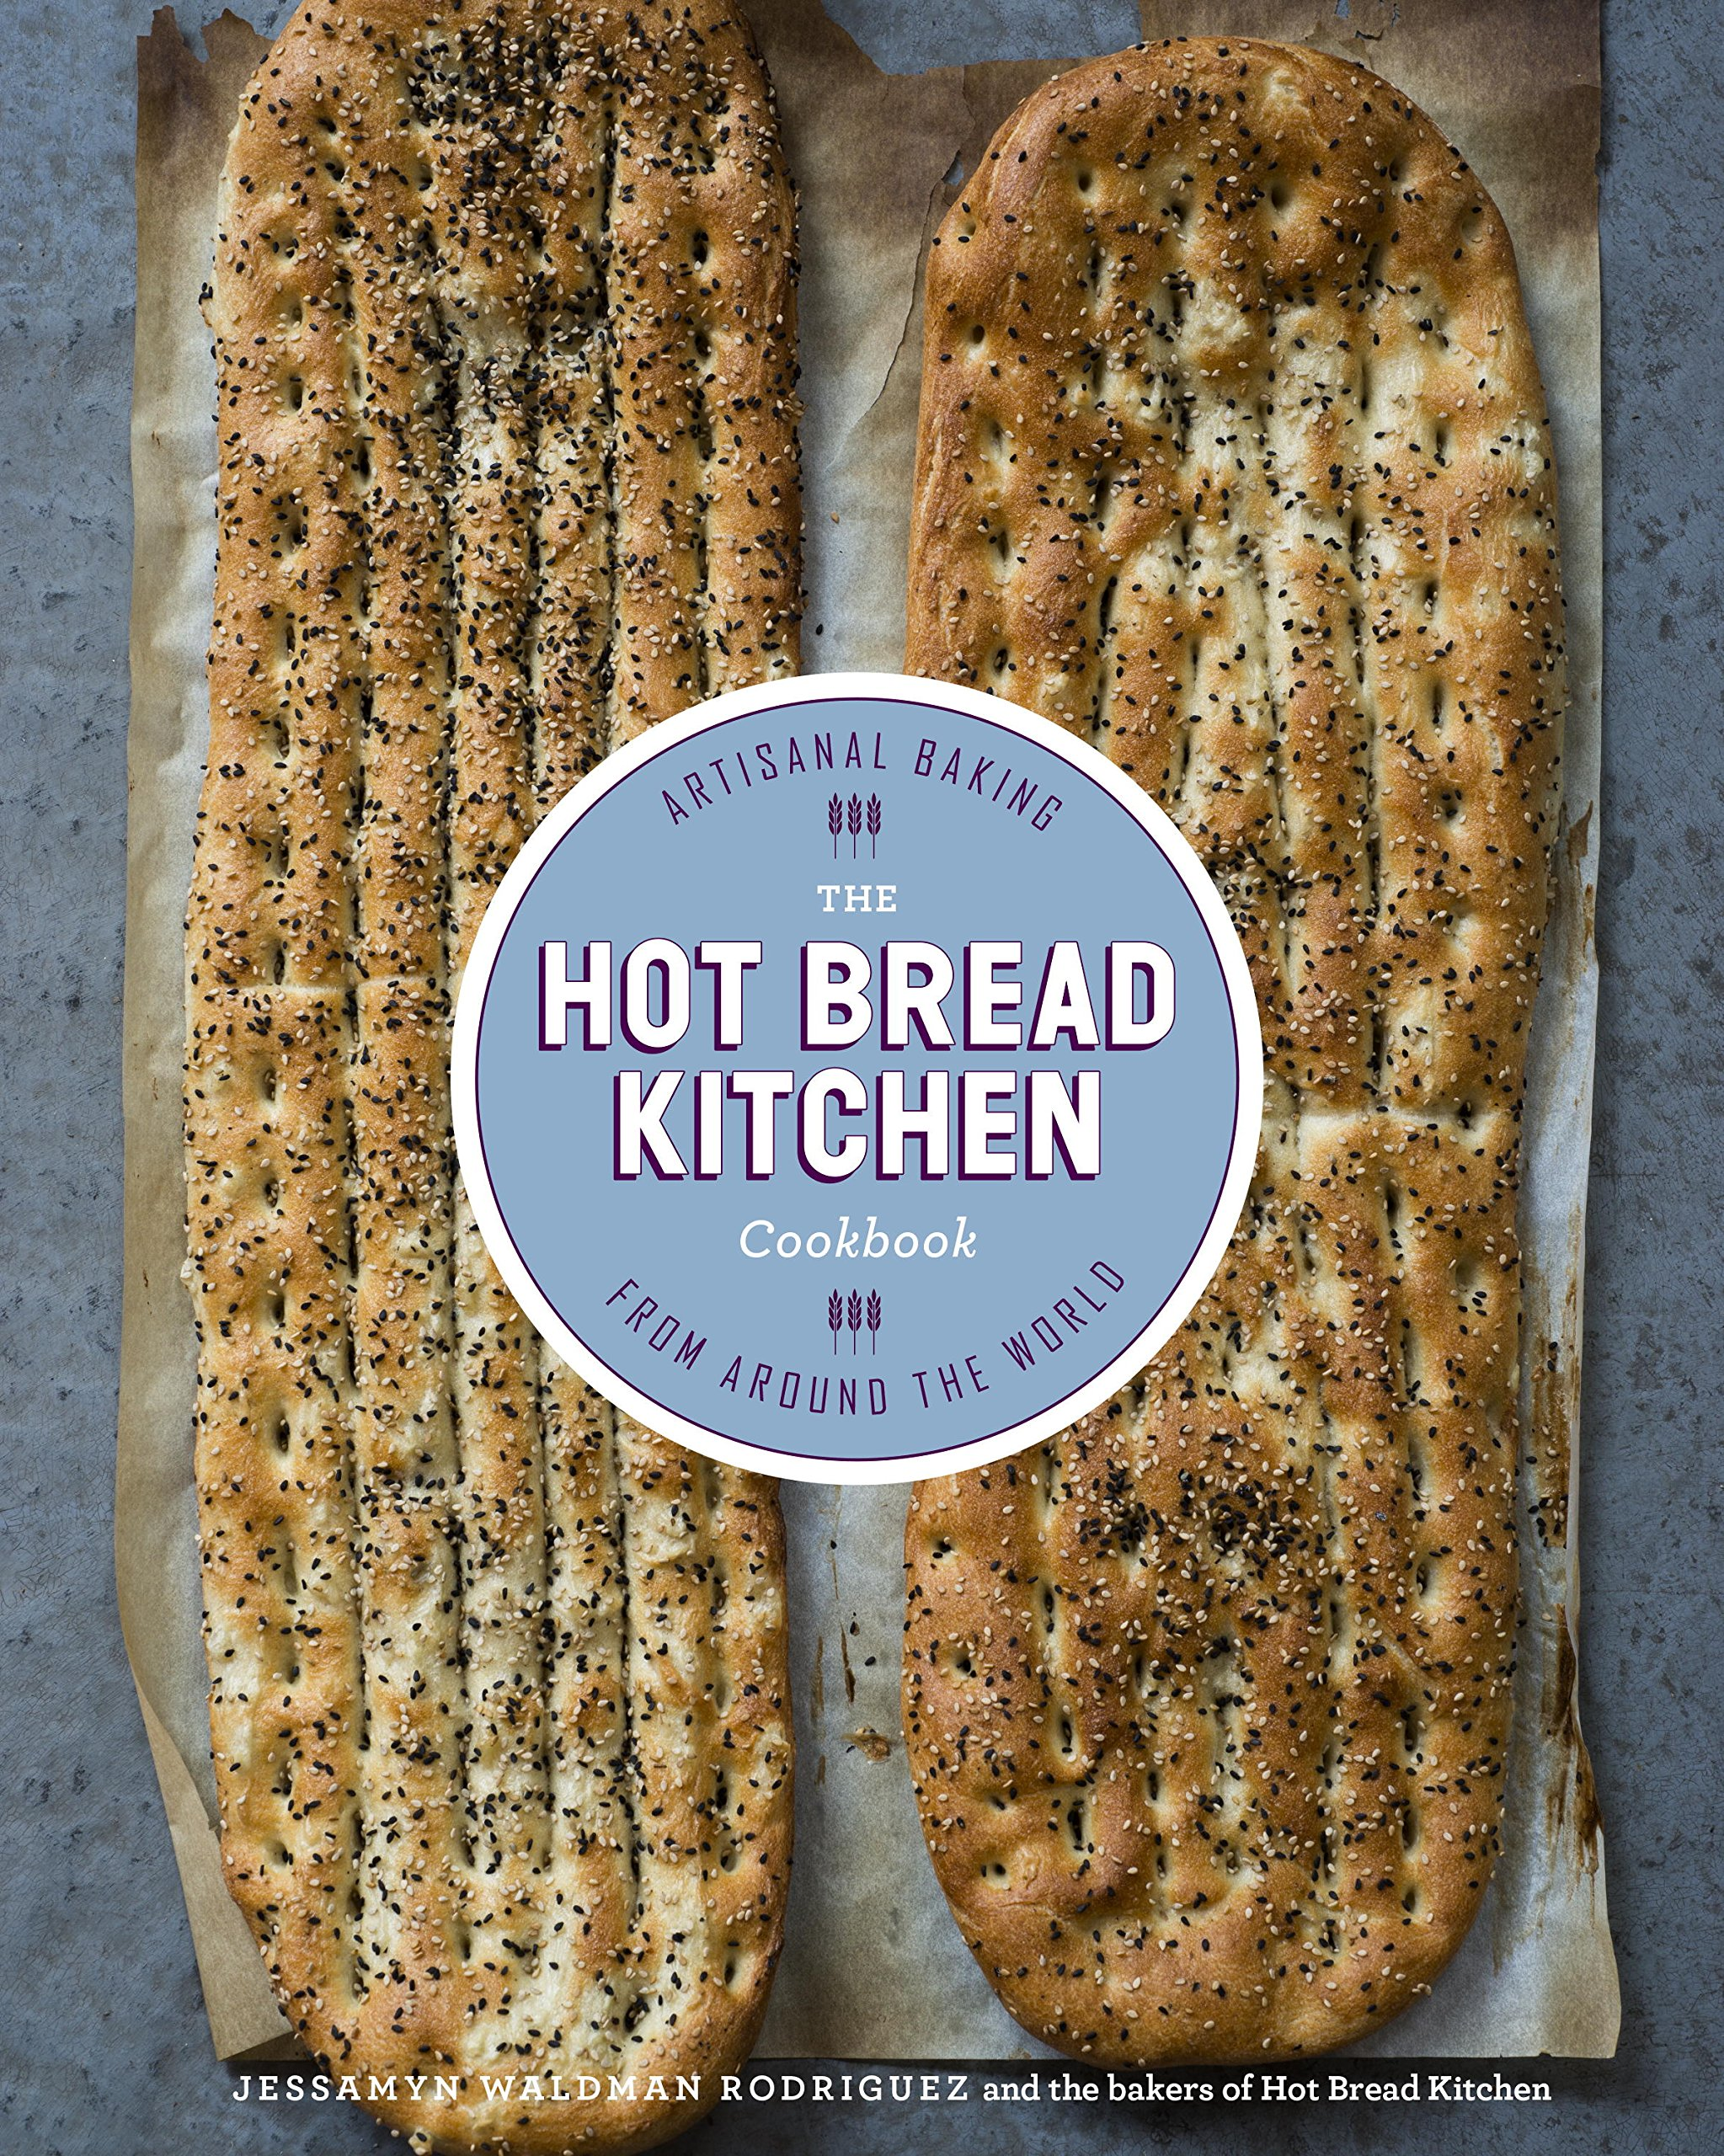 The Hot Bread Kitchen Cookbook  Artisanal Baking From Around The World  English Edition